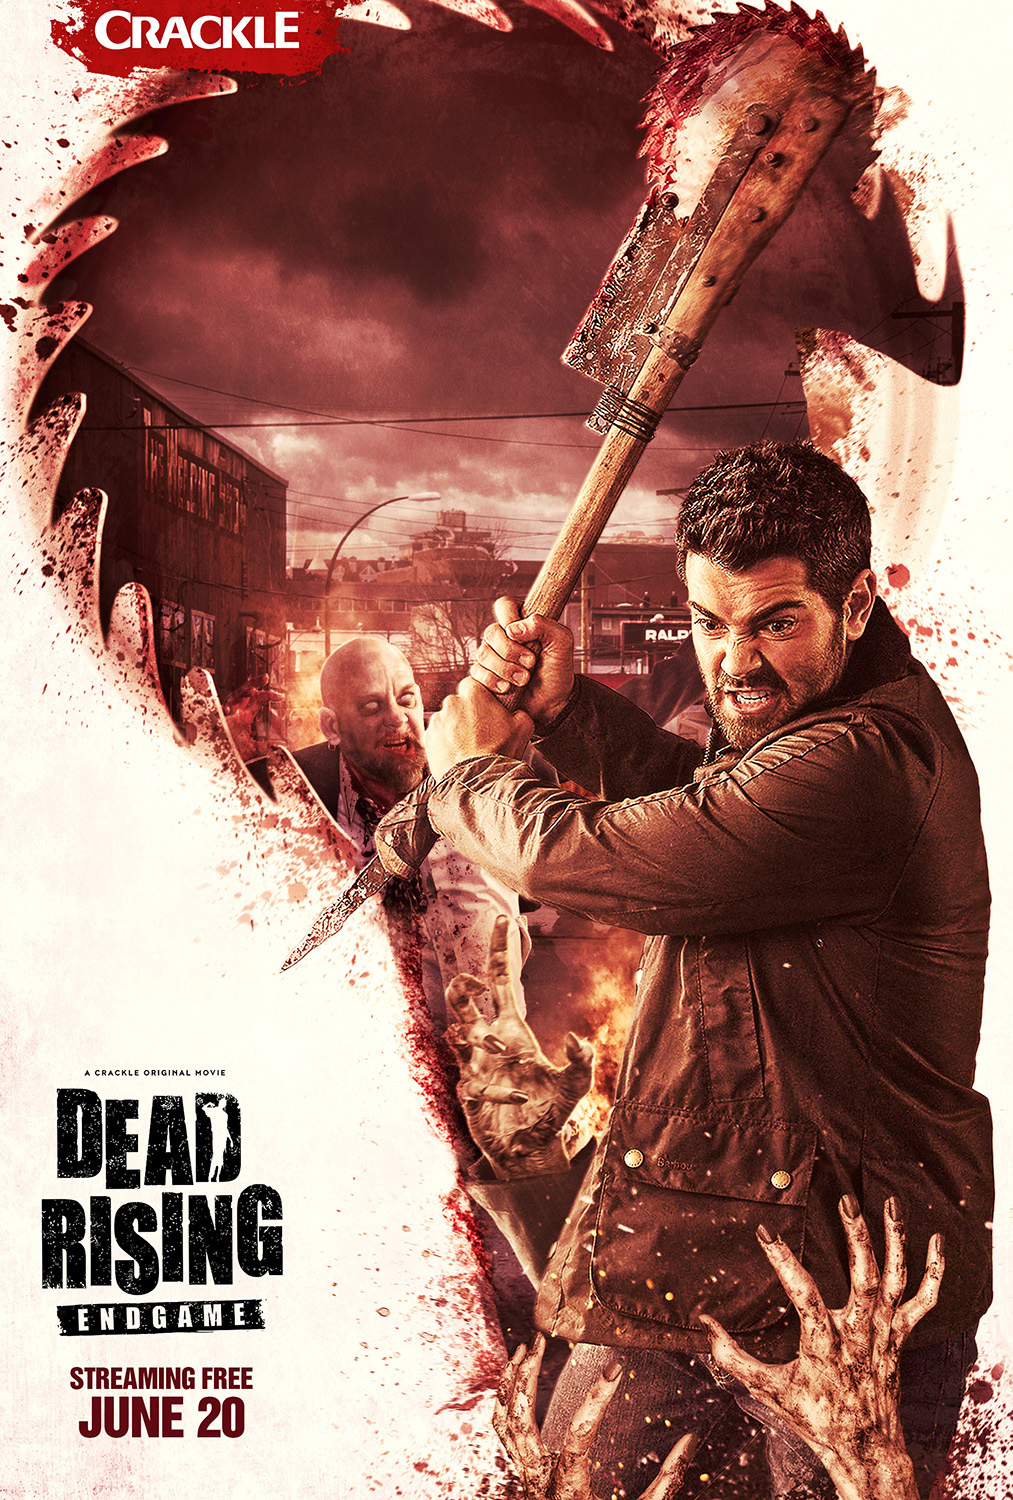 Exclusive Dead Rising Endgame Posters Introduce Your New Favorite